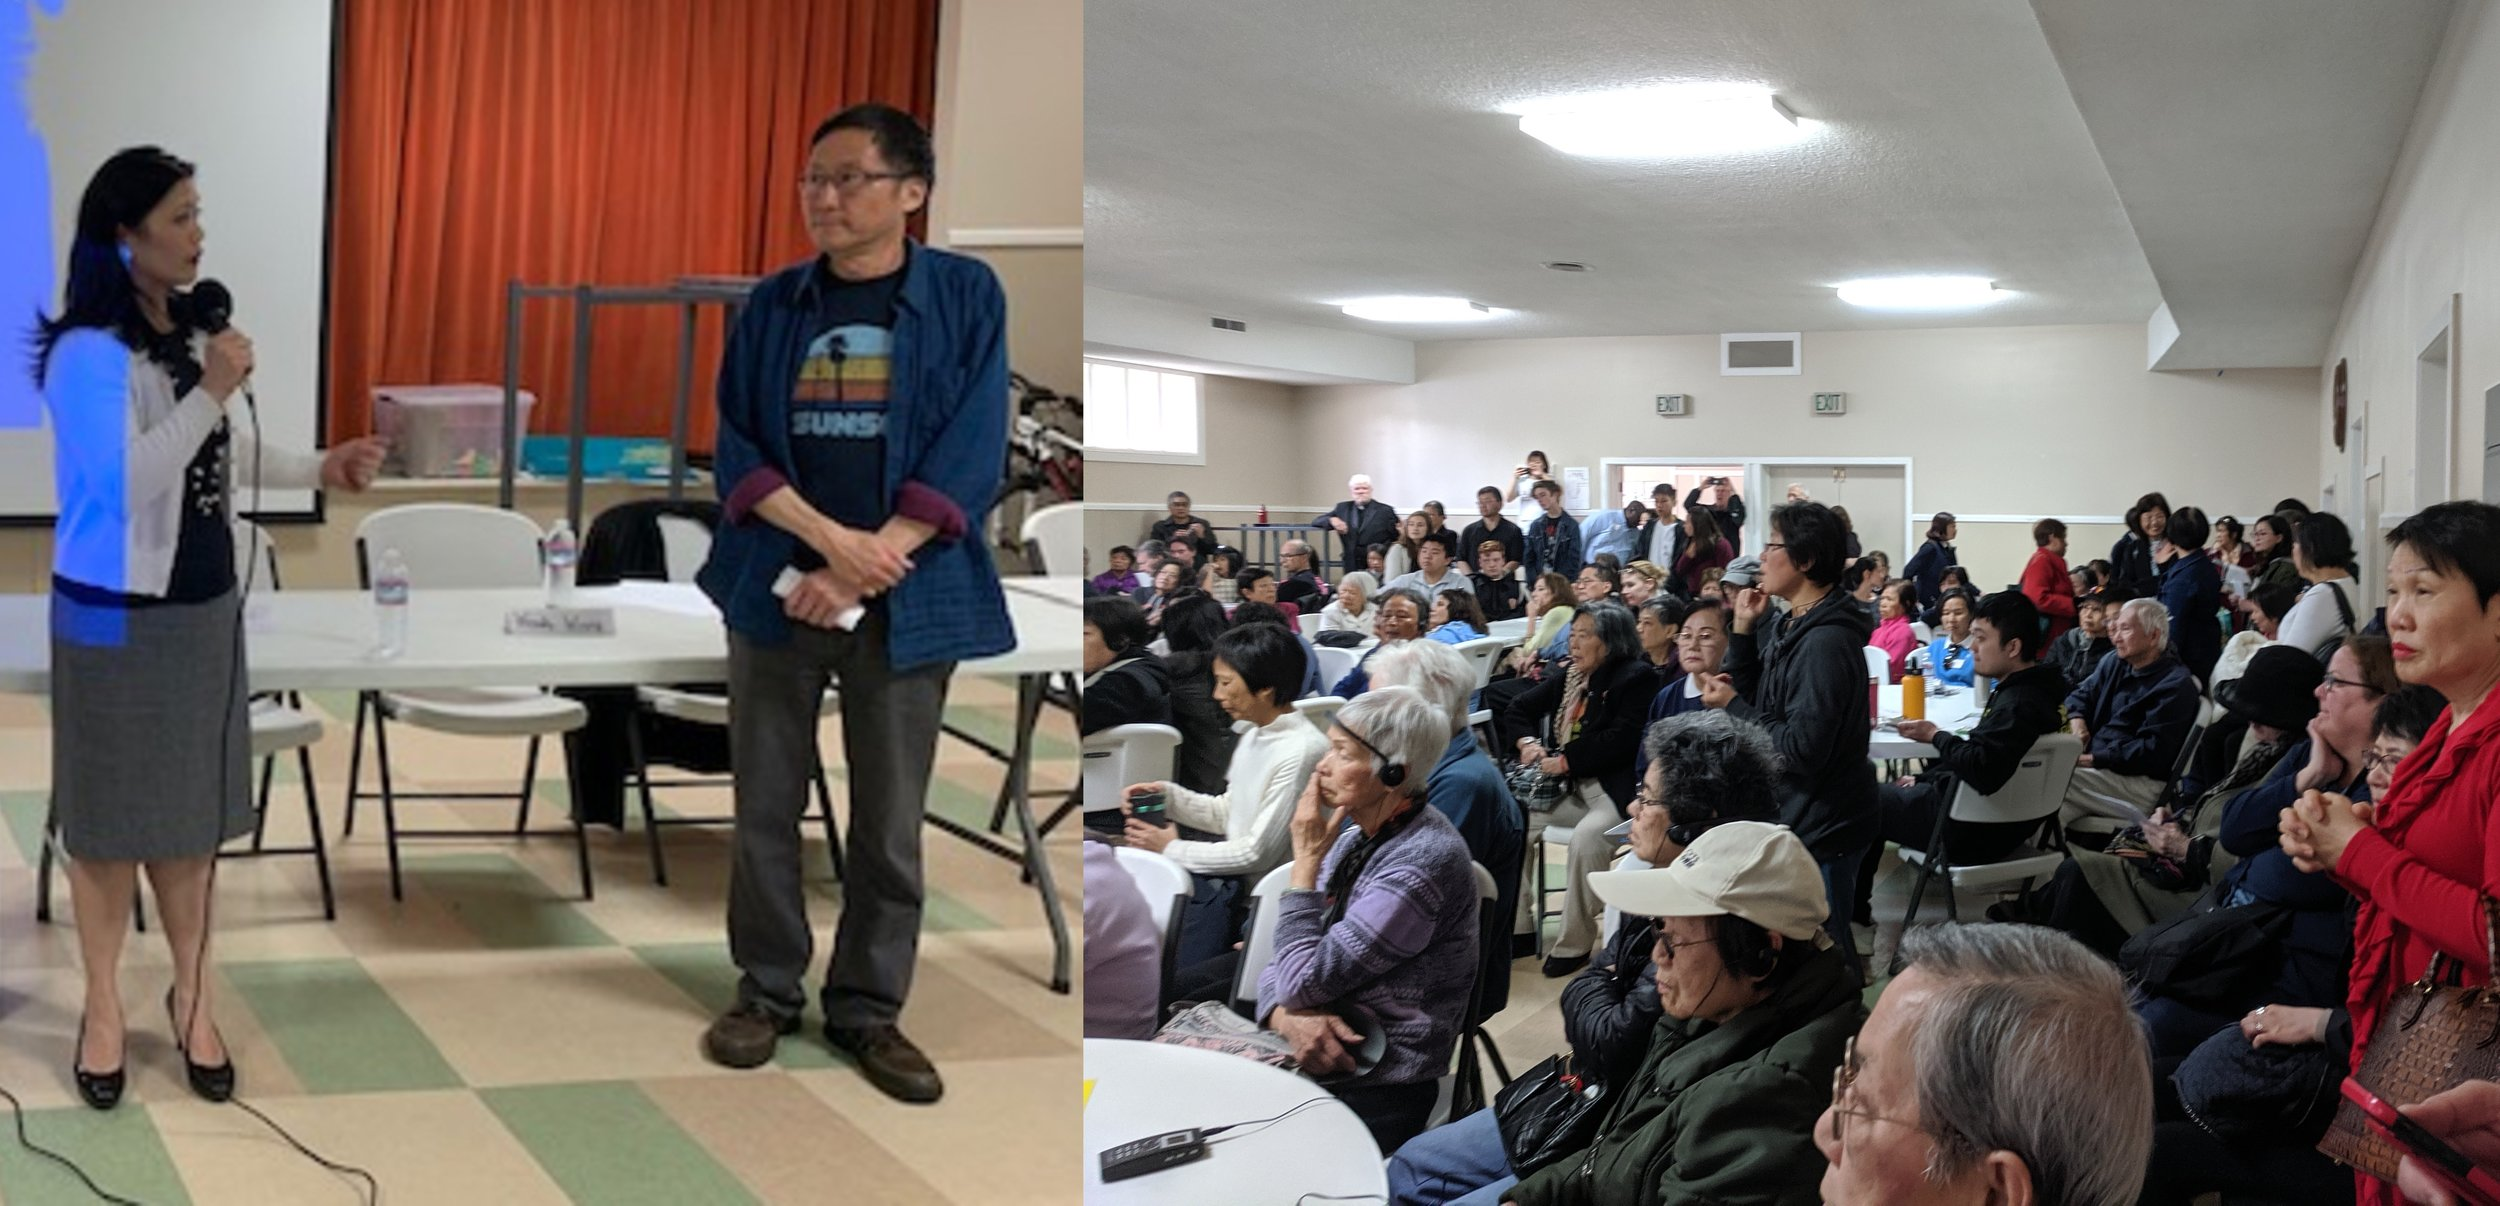 Stop Crime SF board member Nancy Tung briefs residents about the group's crime prevention programs at the District 4 (Sunset) public safety town hall held by Supervisor Gordon Mar.